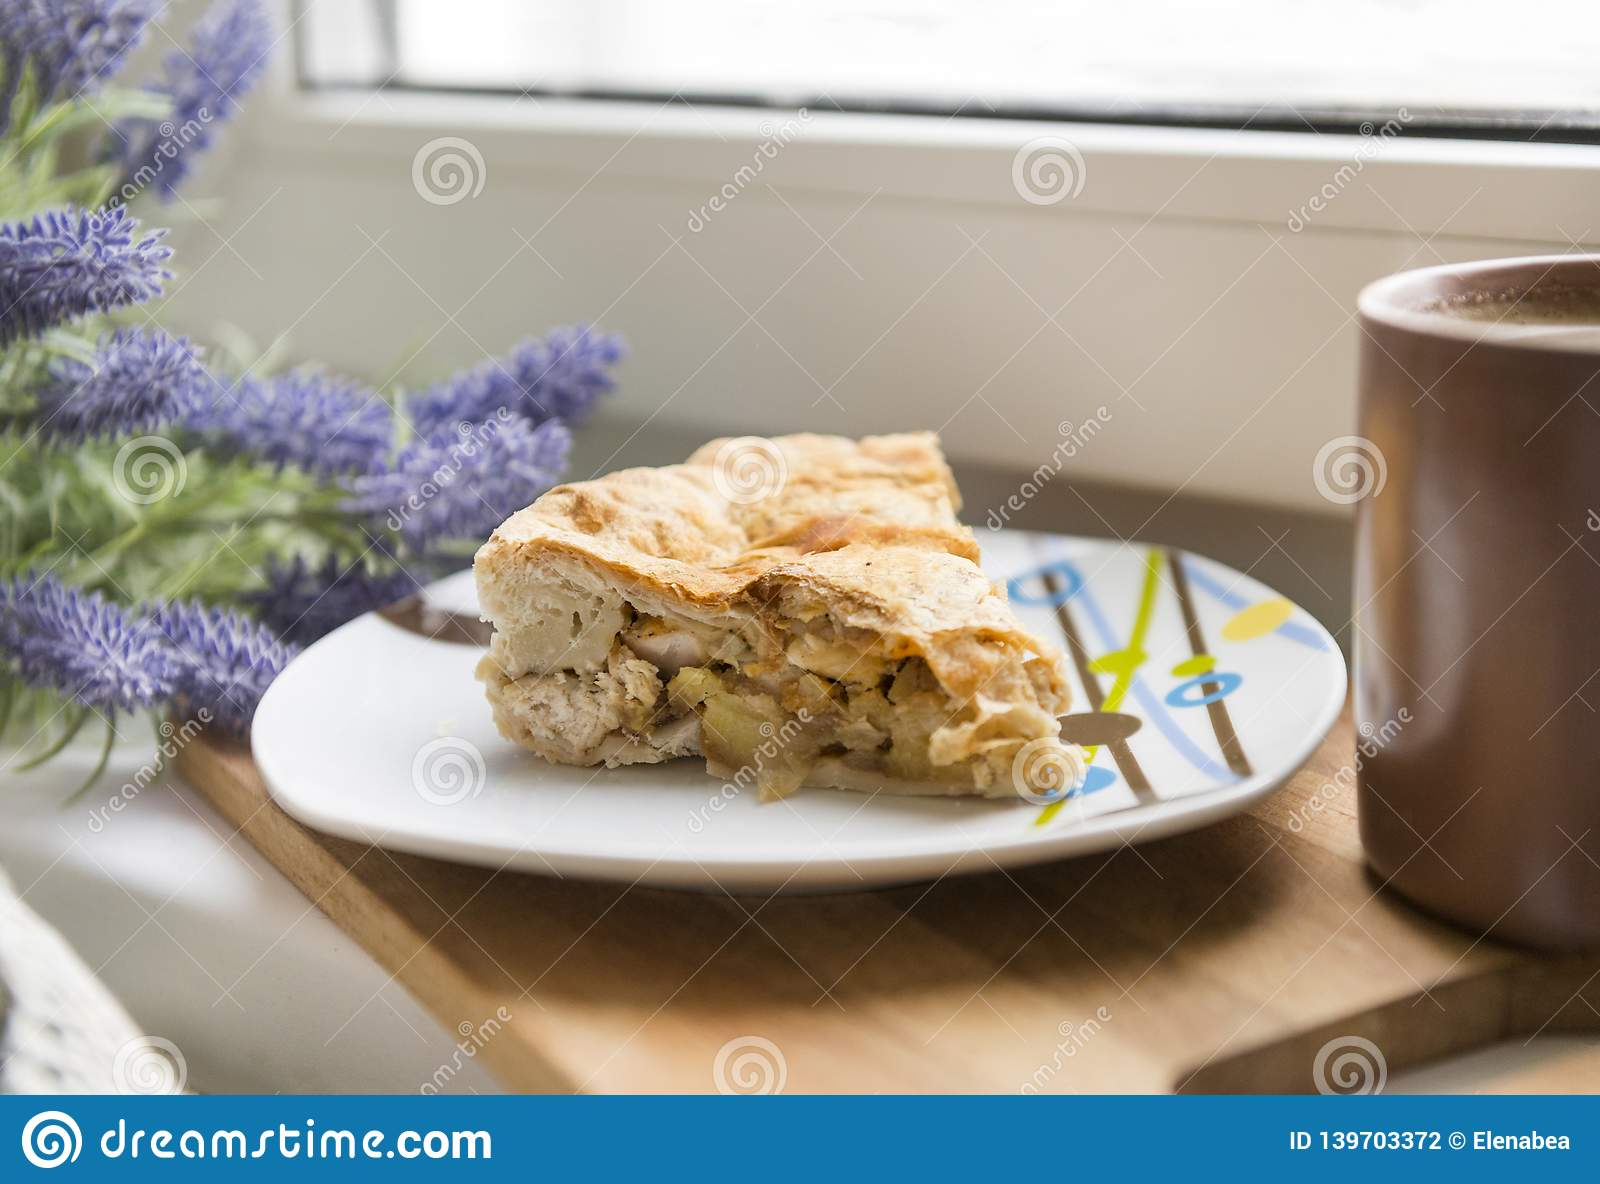 piece of pie with chicken and potatoes on a plate, lavender flowers, mug